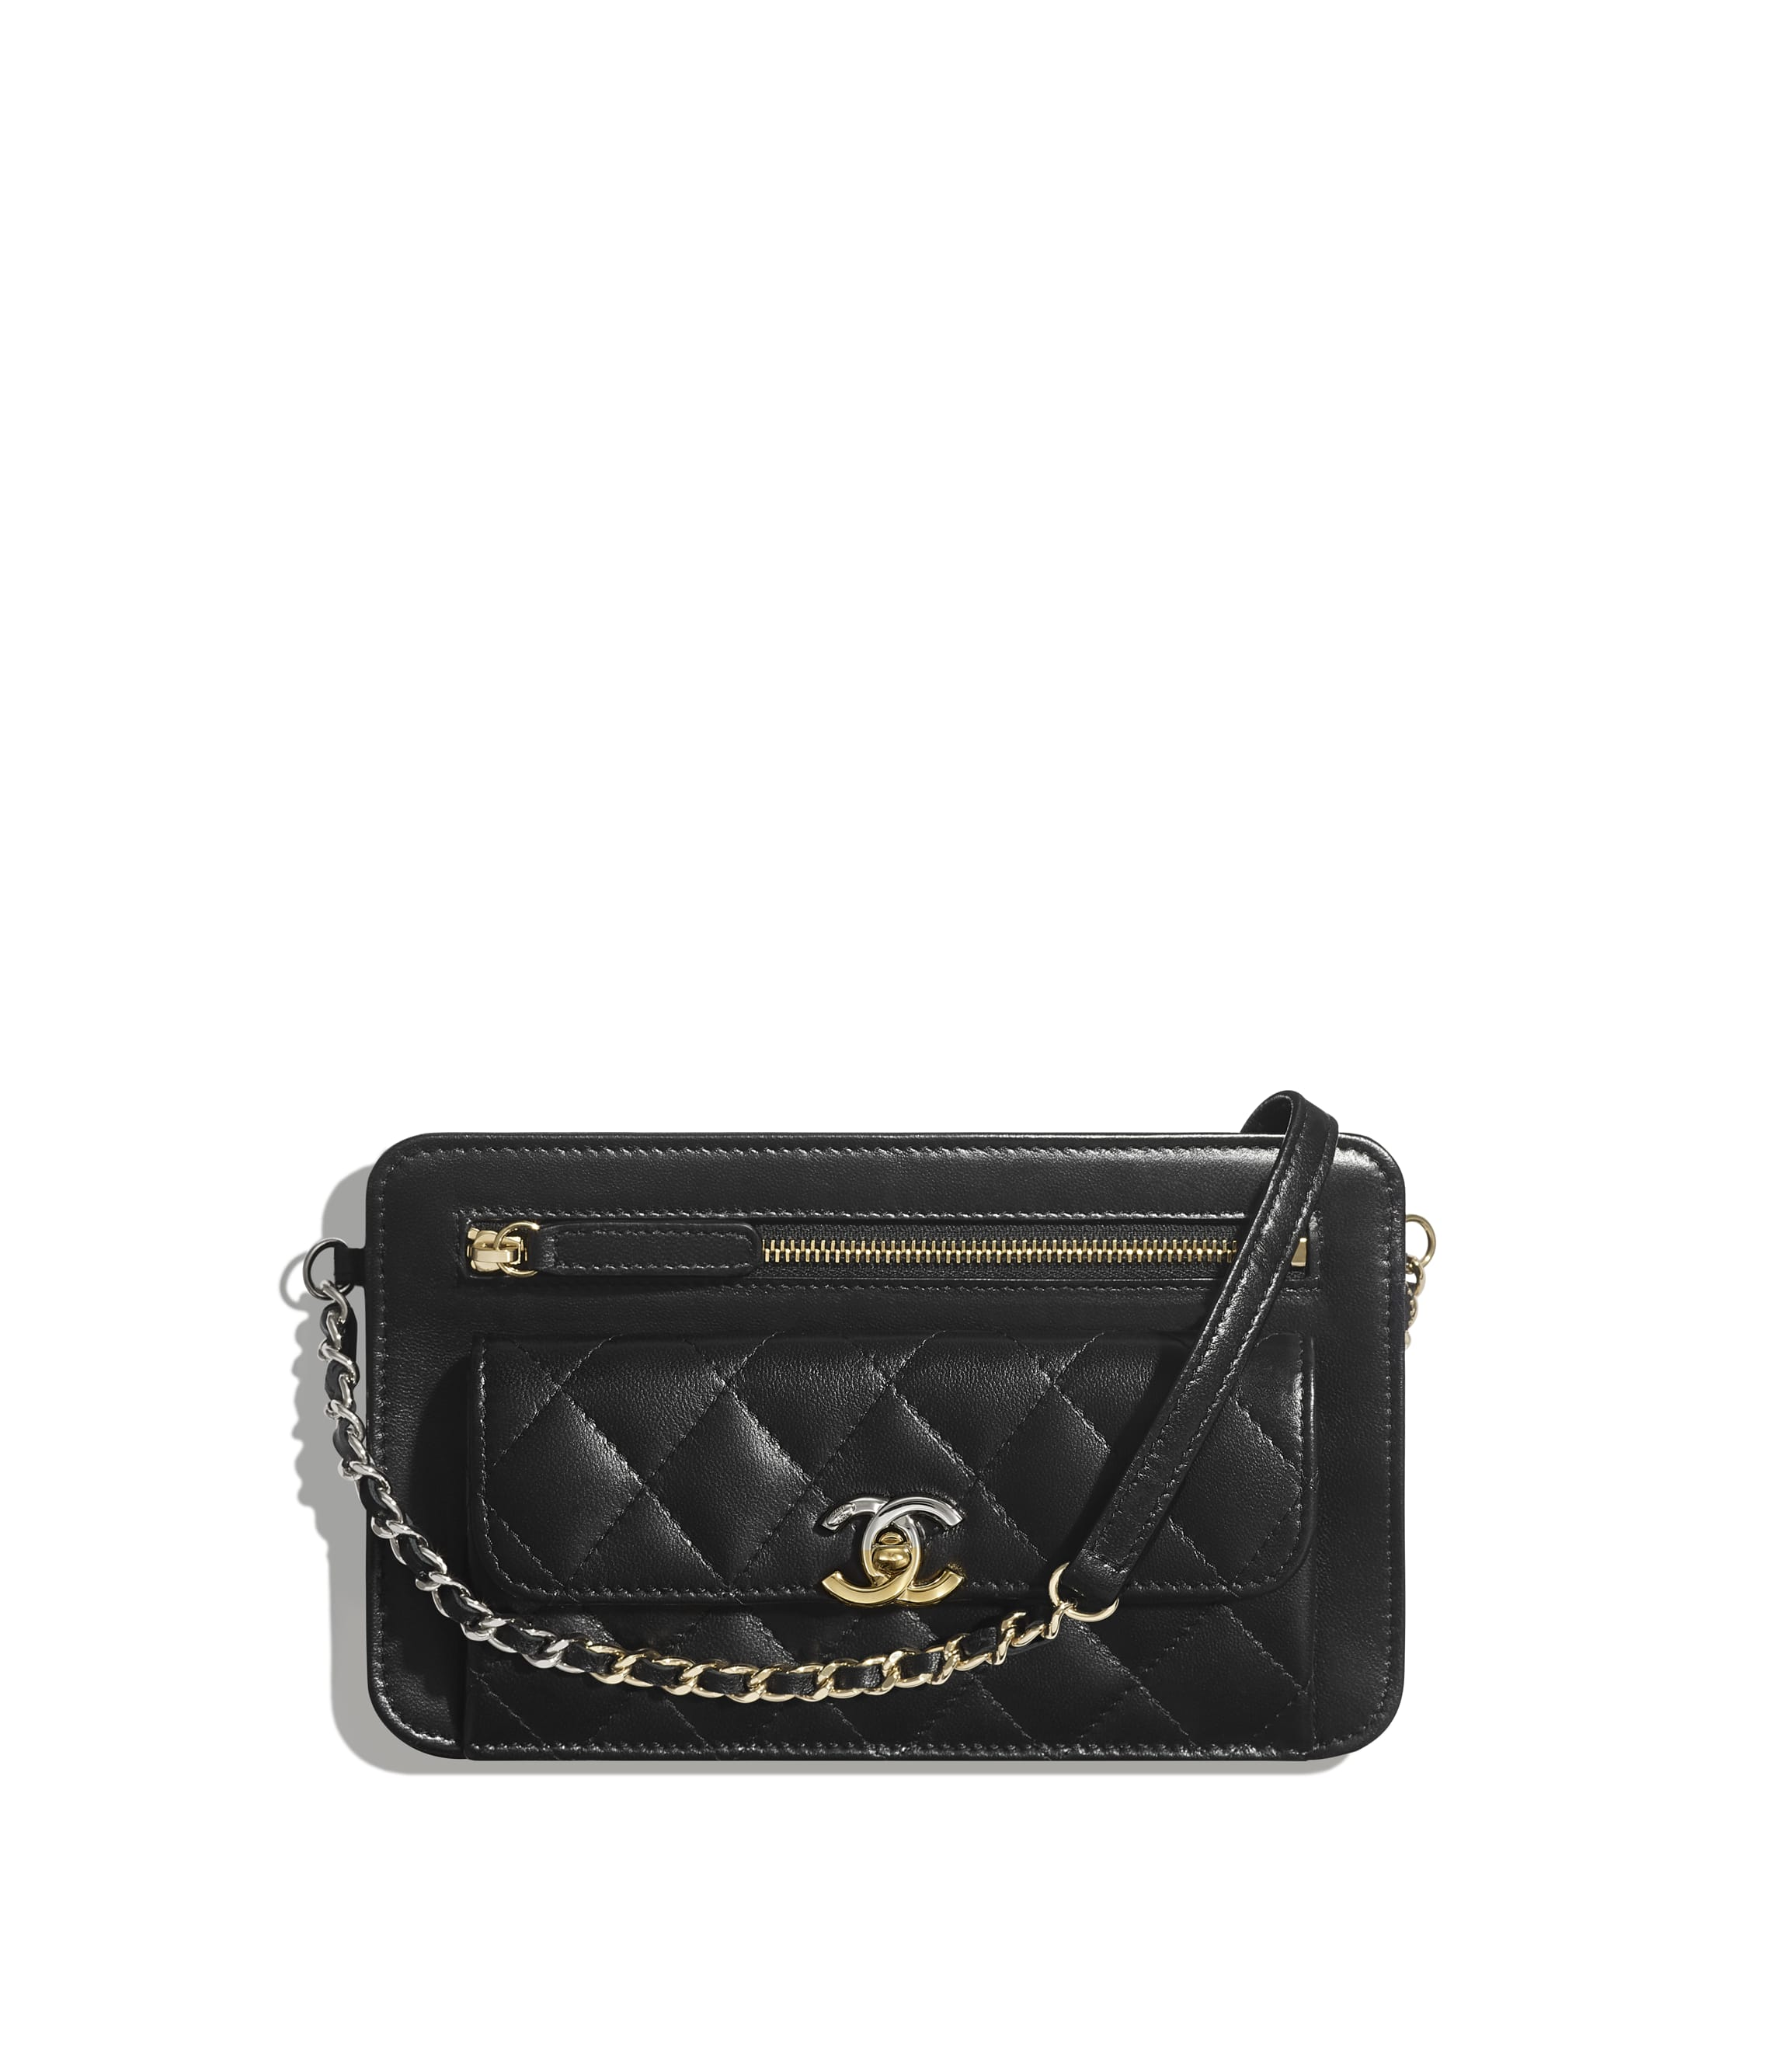 cfd978d2b9ed Clutches with Chain - Small Leather Goods - CHANEL